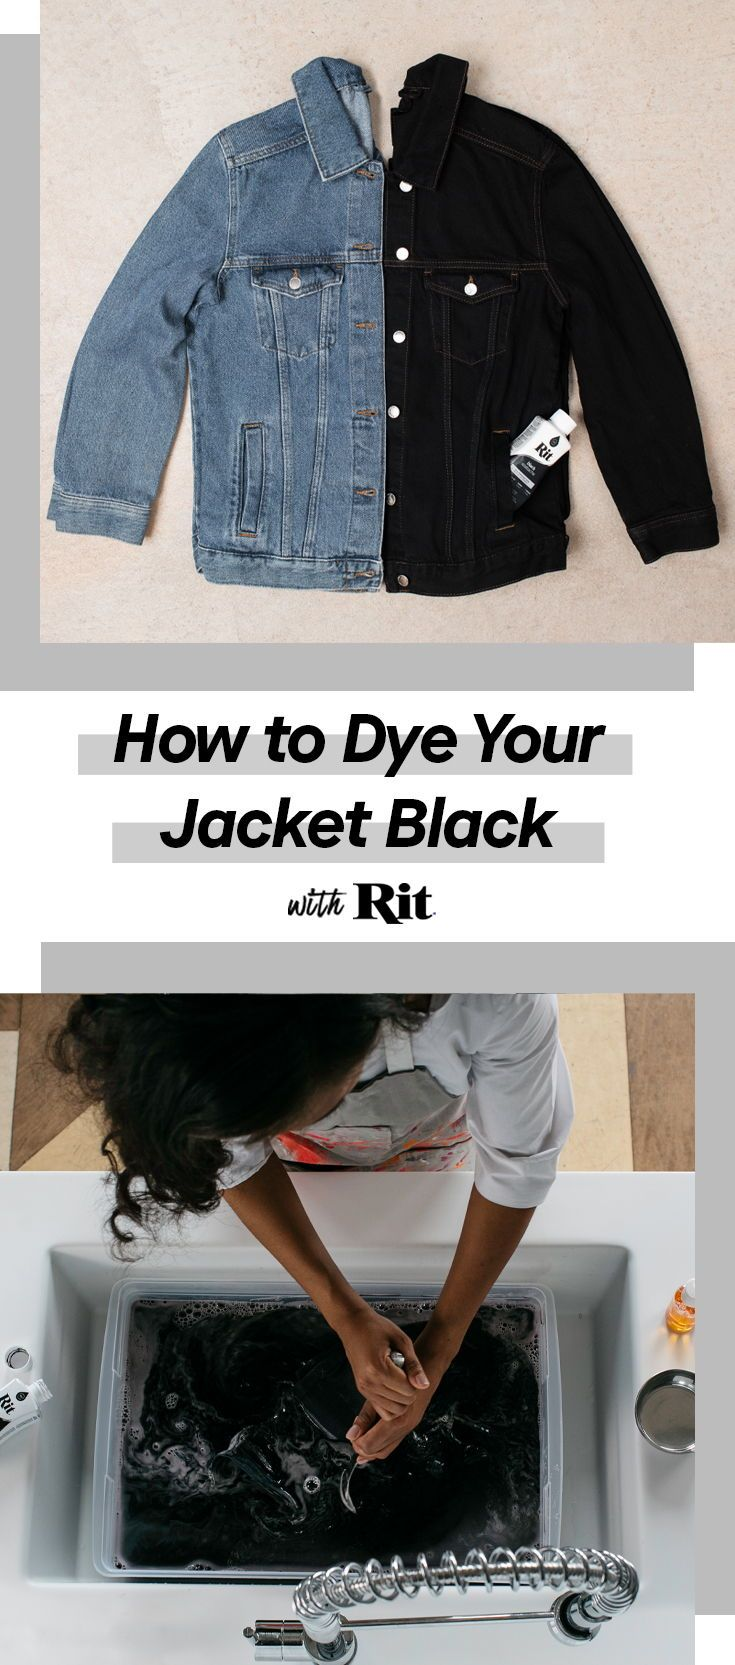 Dye Your Jacket Black Contrary To Popular Belief You Don T Have To Get Rid Of Your Faded Clothing Instead Save Your F Diy Jacket Clothes Dye Diy Dye Fabric